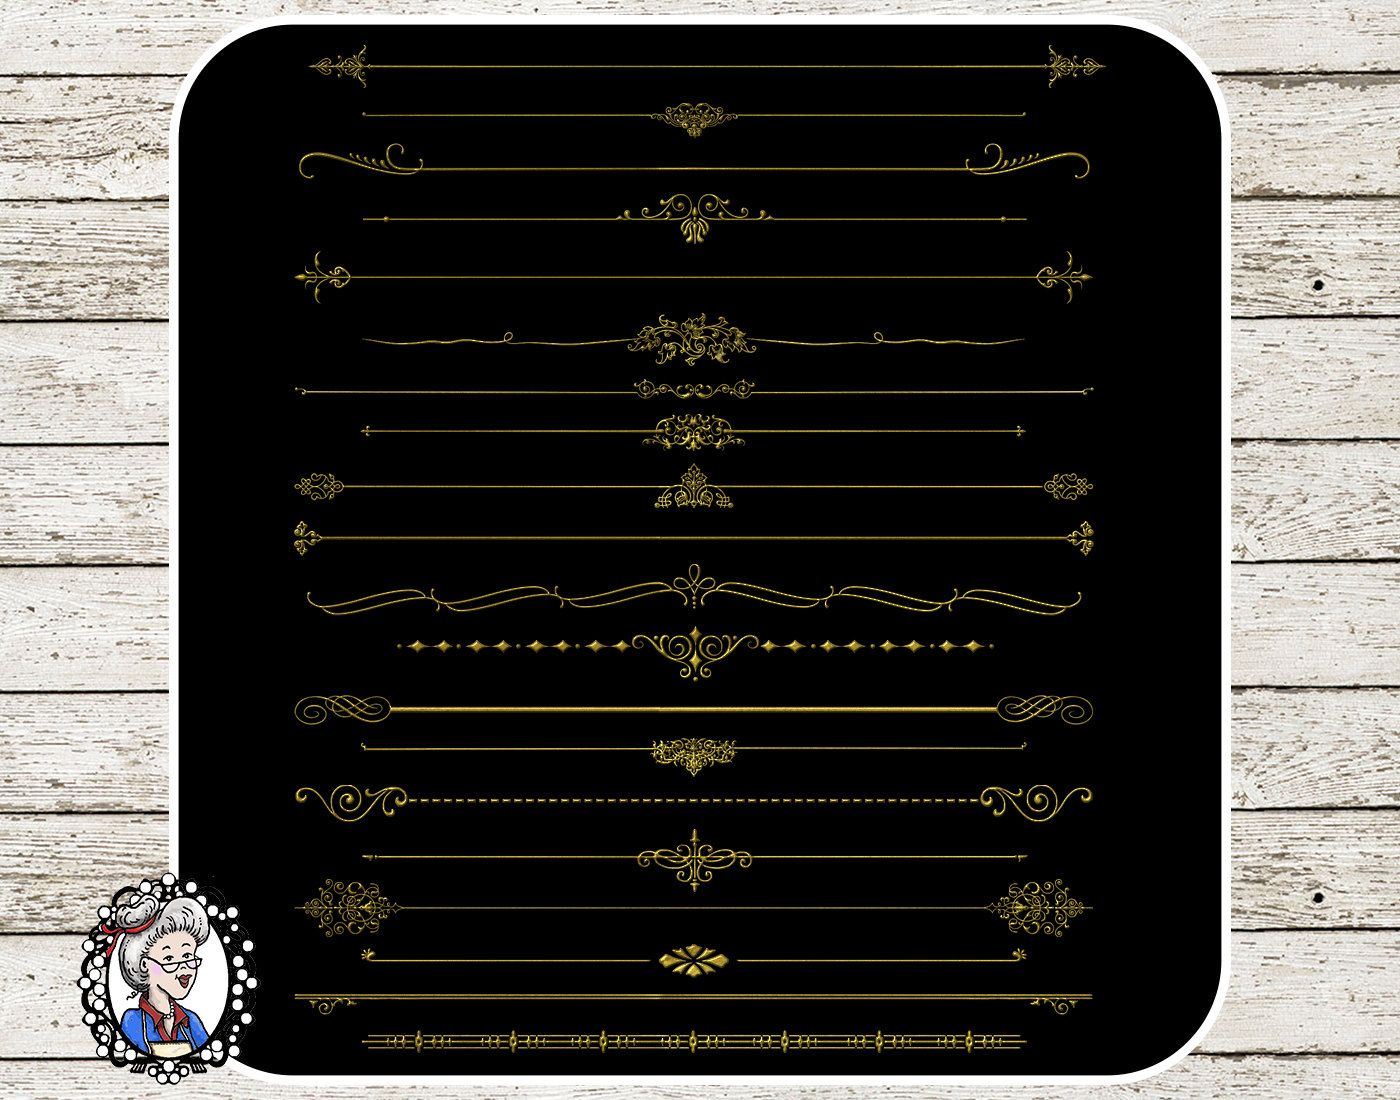 Clipart: Text Divider in Black / Gold / Silver Ornaments.